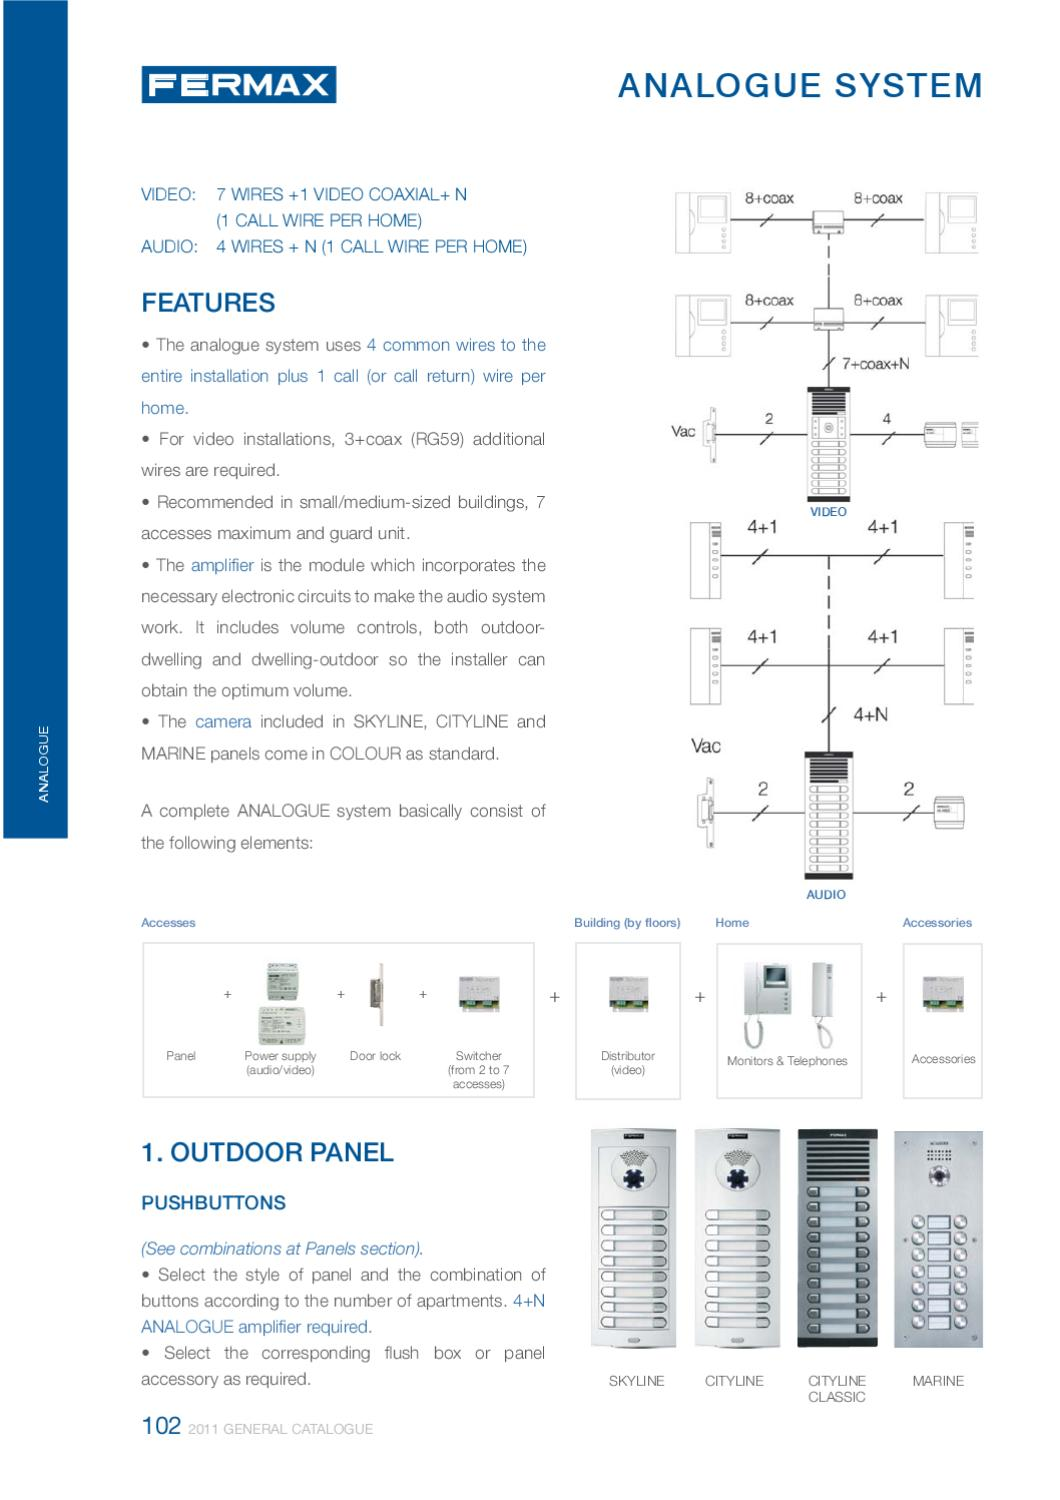 Fermax Intercom Wiring Diagram Modern Design Of Apartment Analogue General Catalogue 2011 By Electronica Issuu Rh Com Aiphone